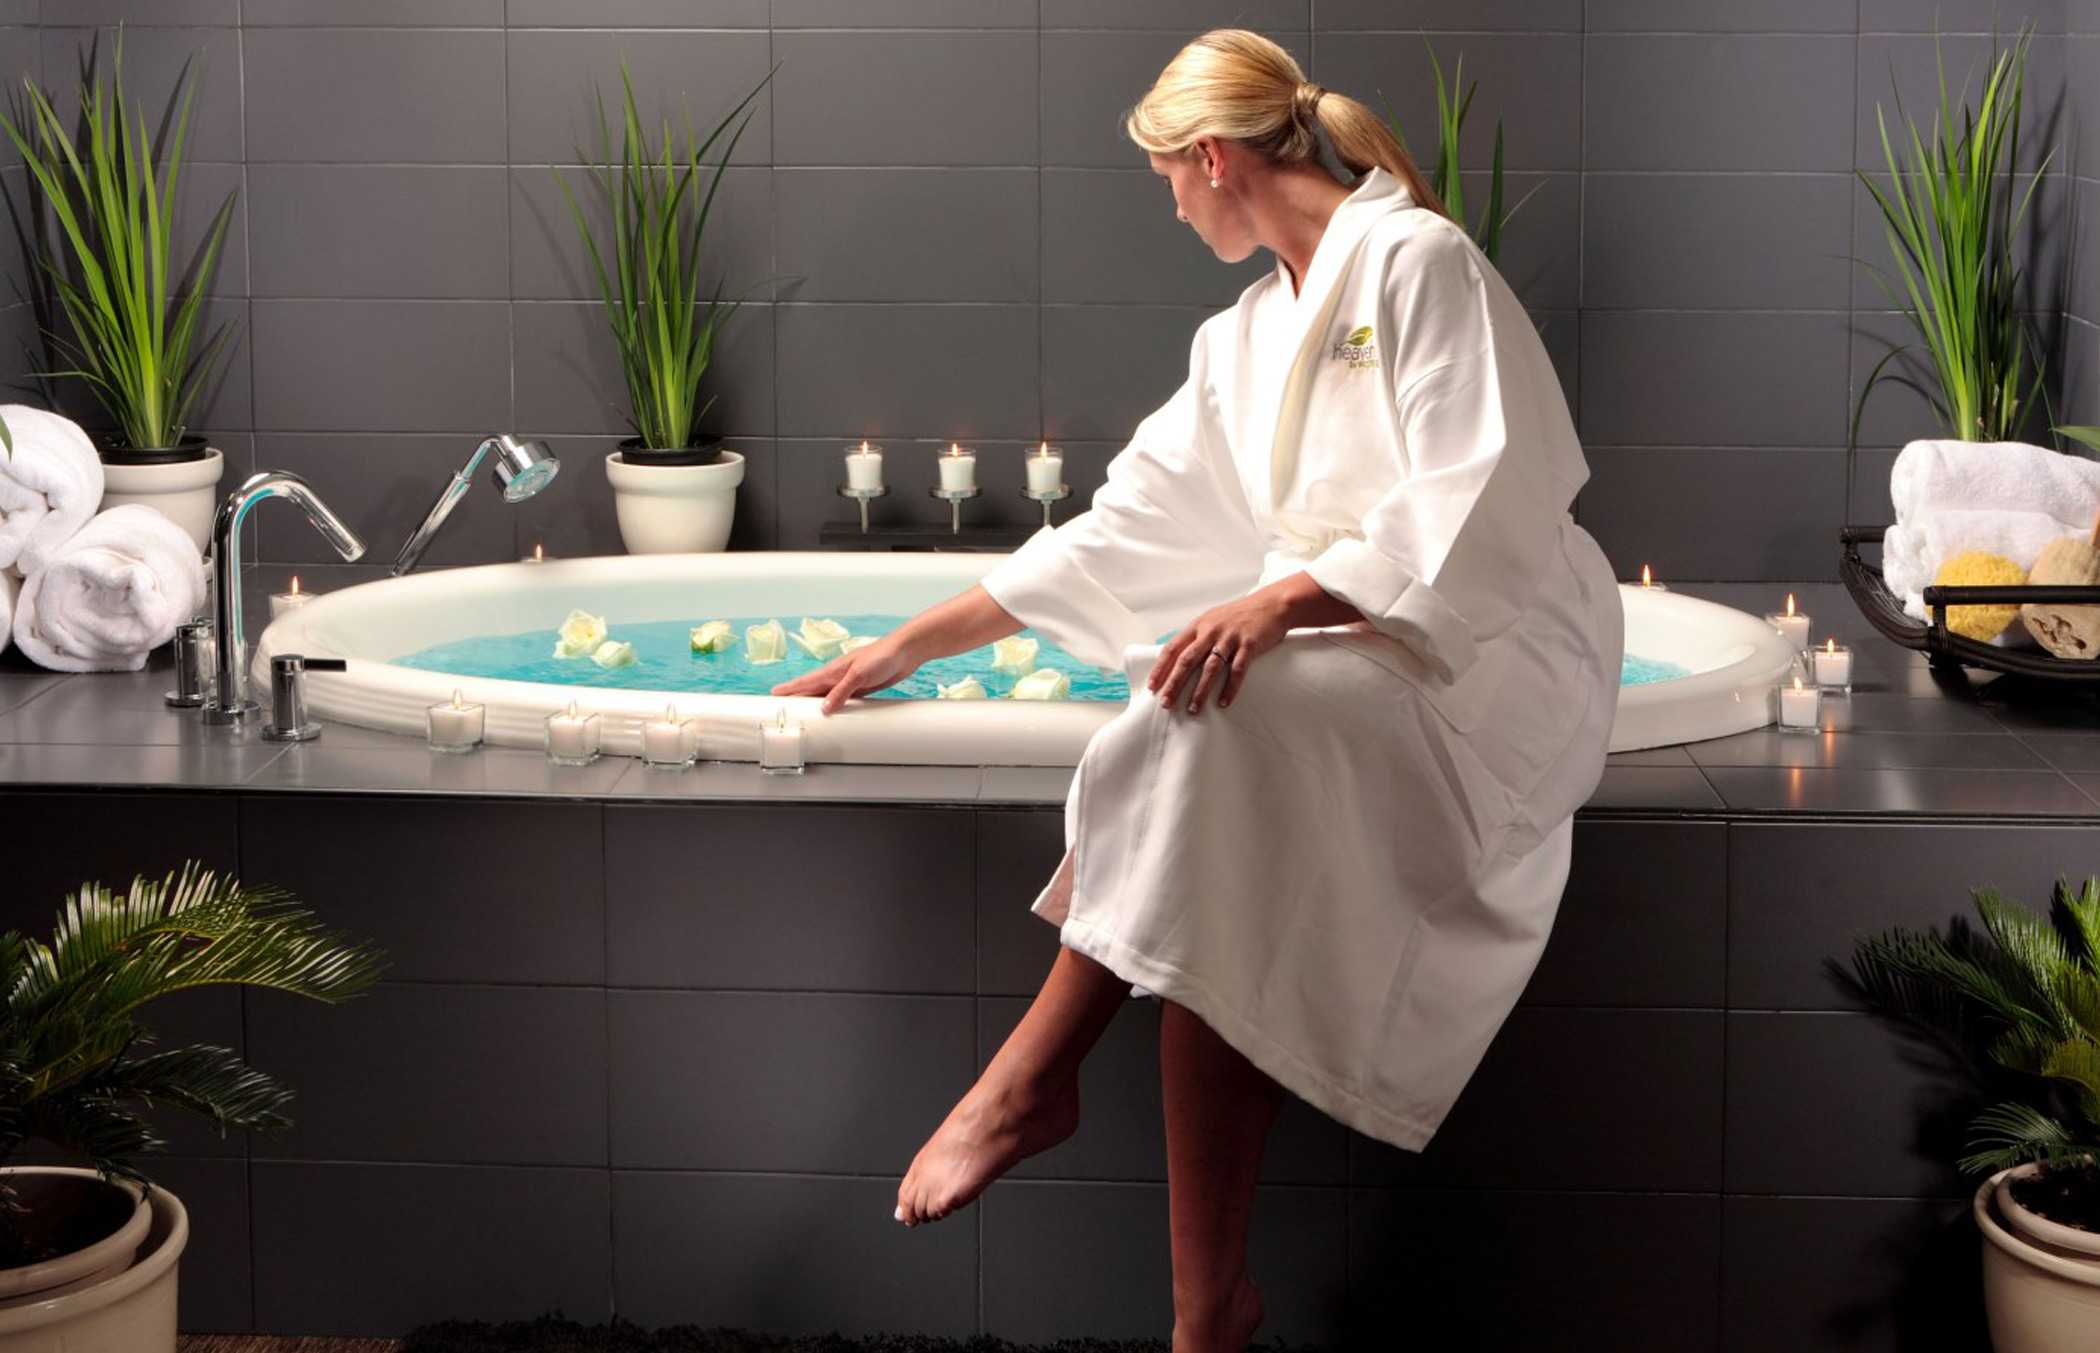 A woman in a robe sitting on the edge of a candlelit spa jacuzzi tub